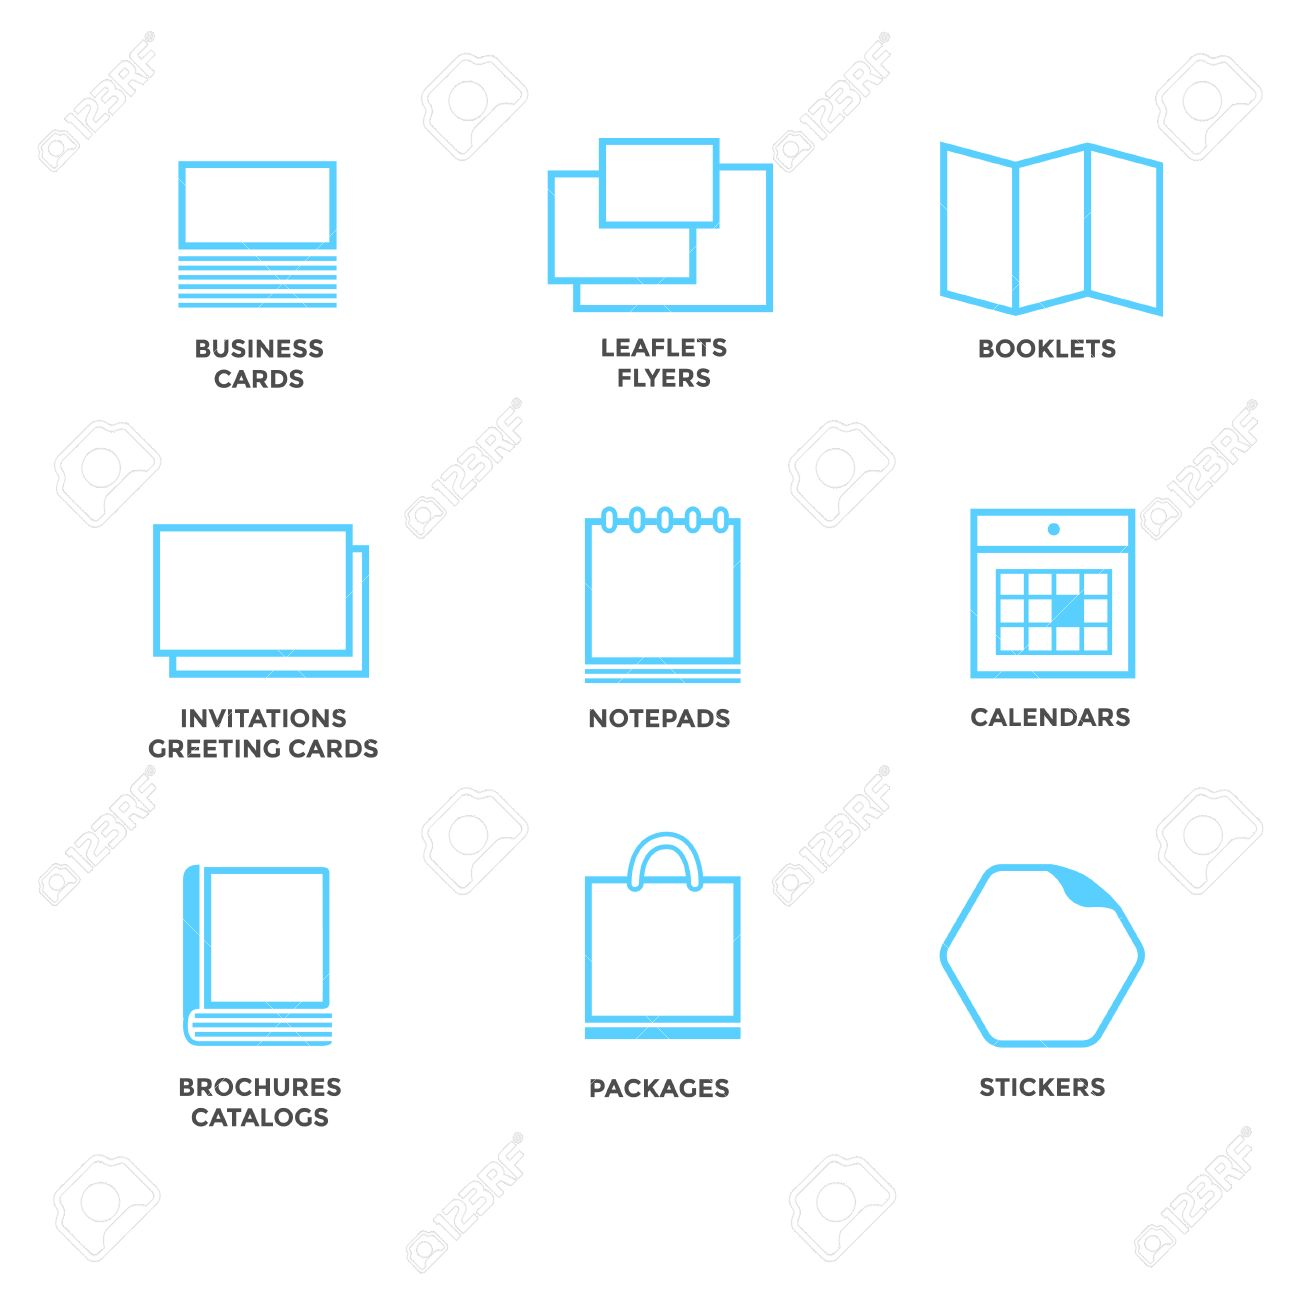 Icons of various print media size format business card flyers size format business card flyers calendars greeting cards m4hsunfo